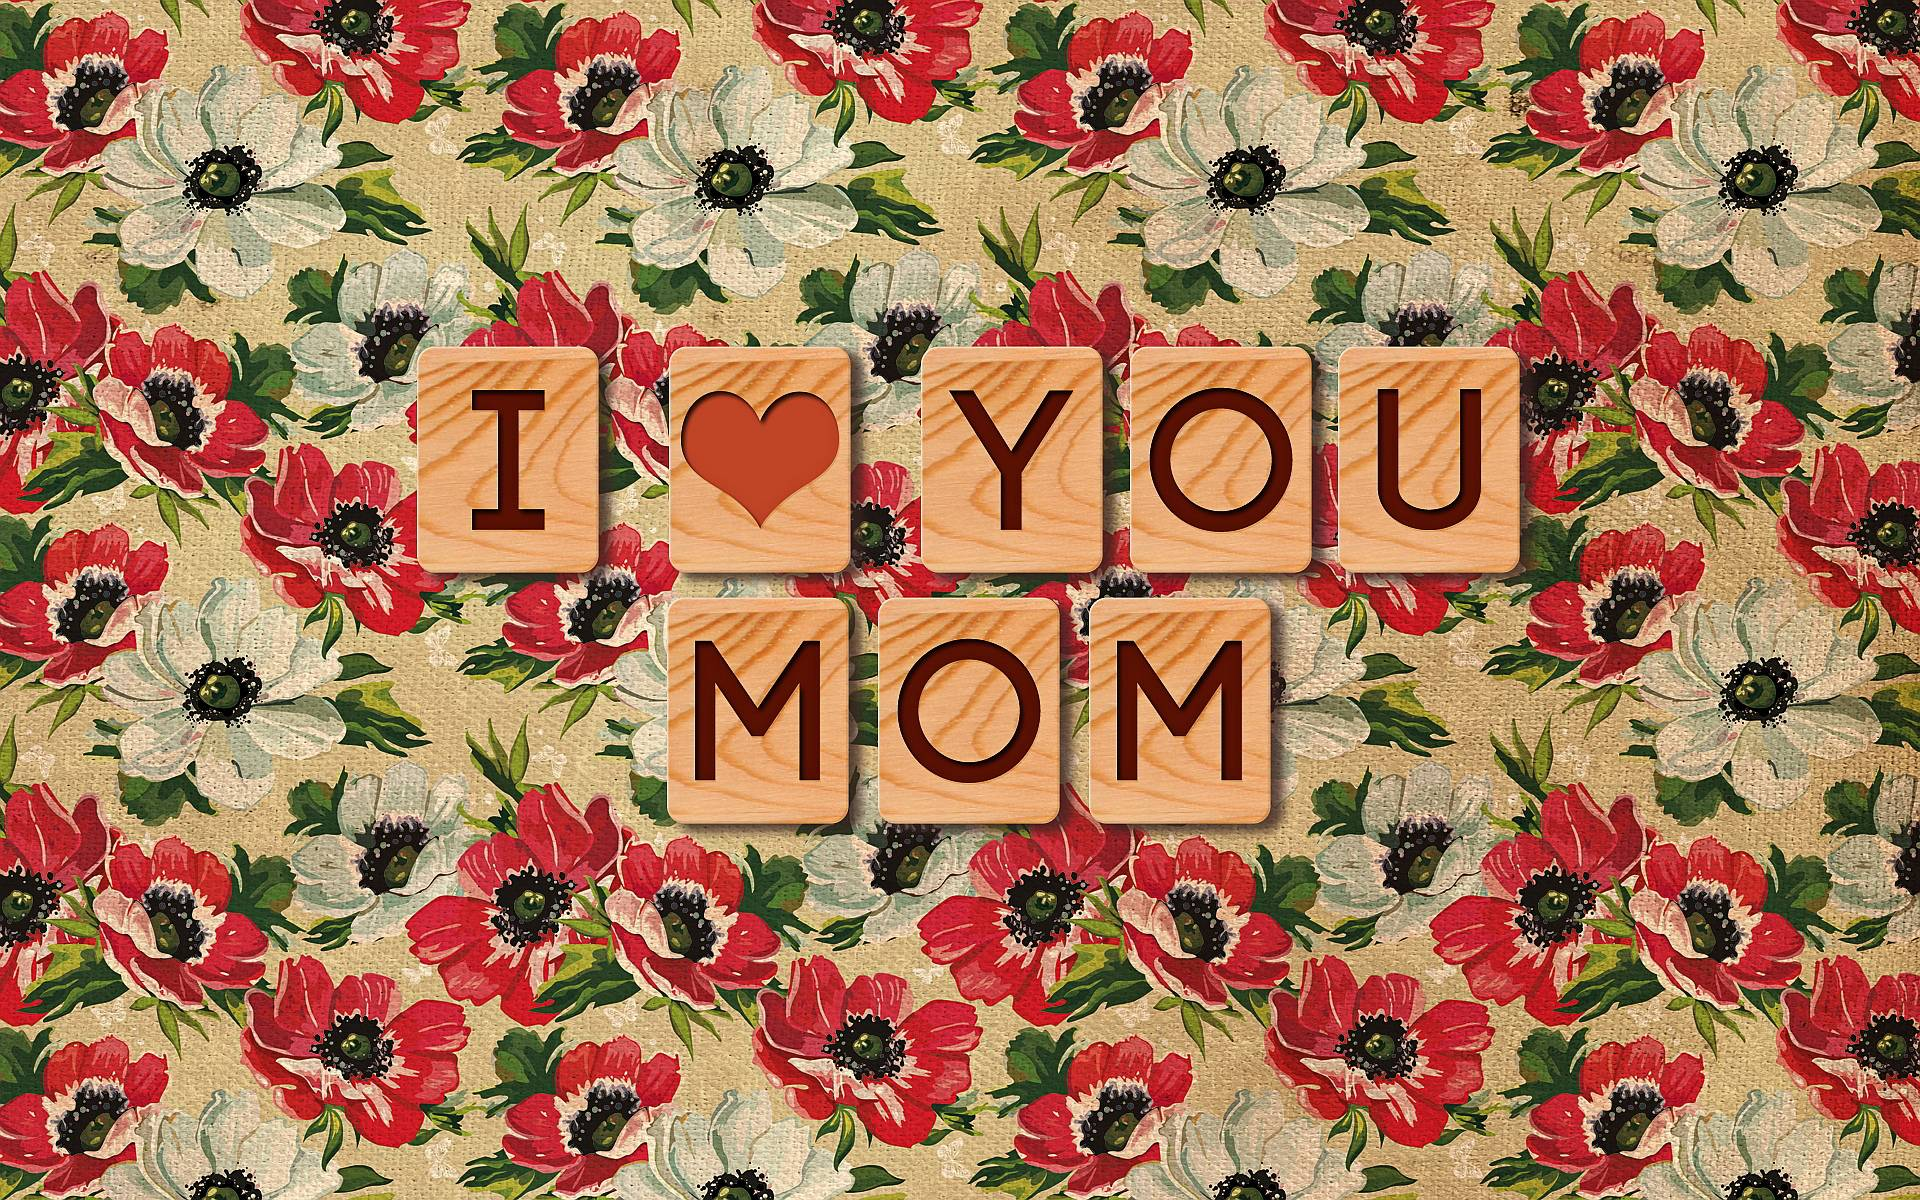 I love you mom wallpapers wallpaper cave i love mom cool pictures 2014 2015 tops hd wallpapers altavistaventures Choice Image